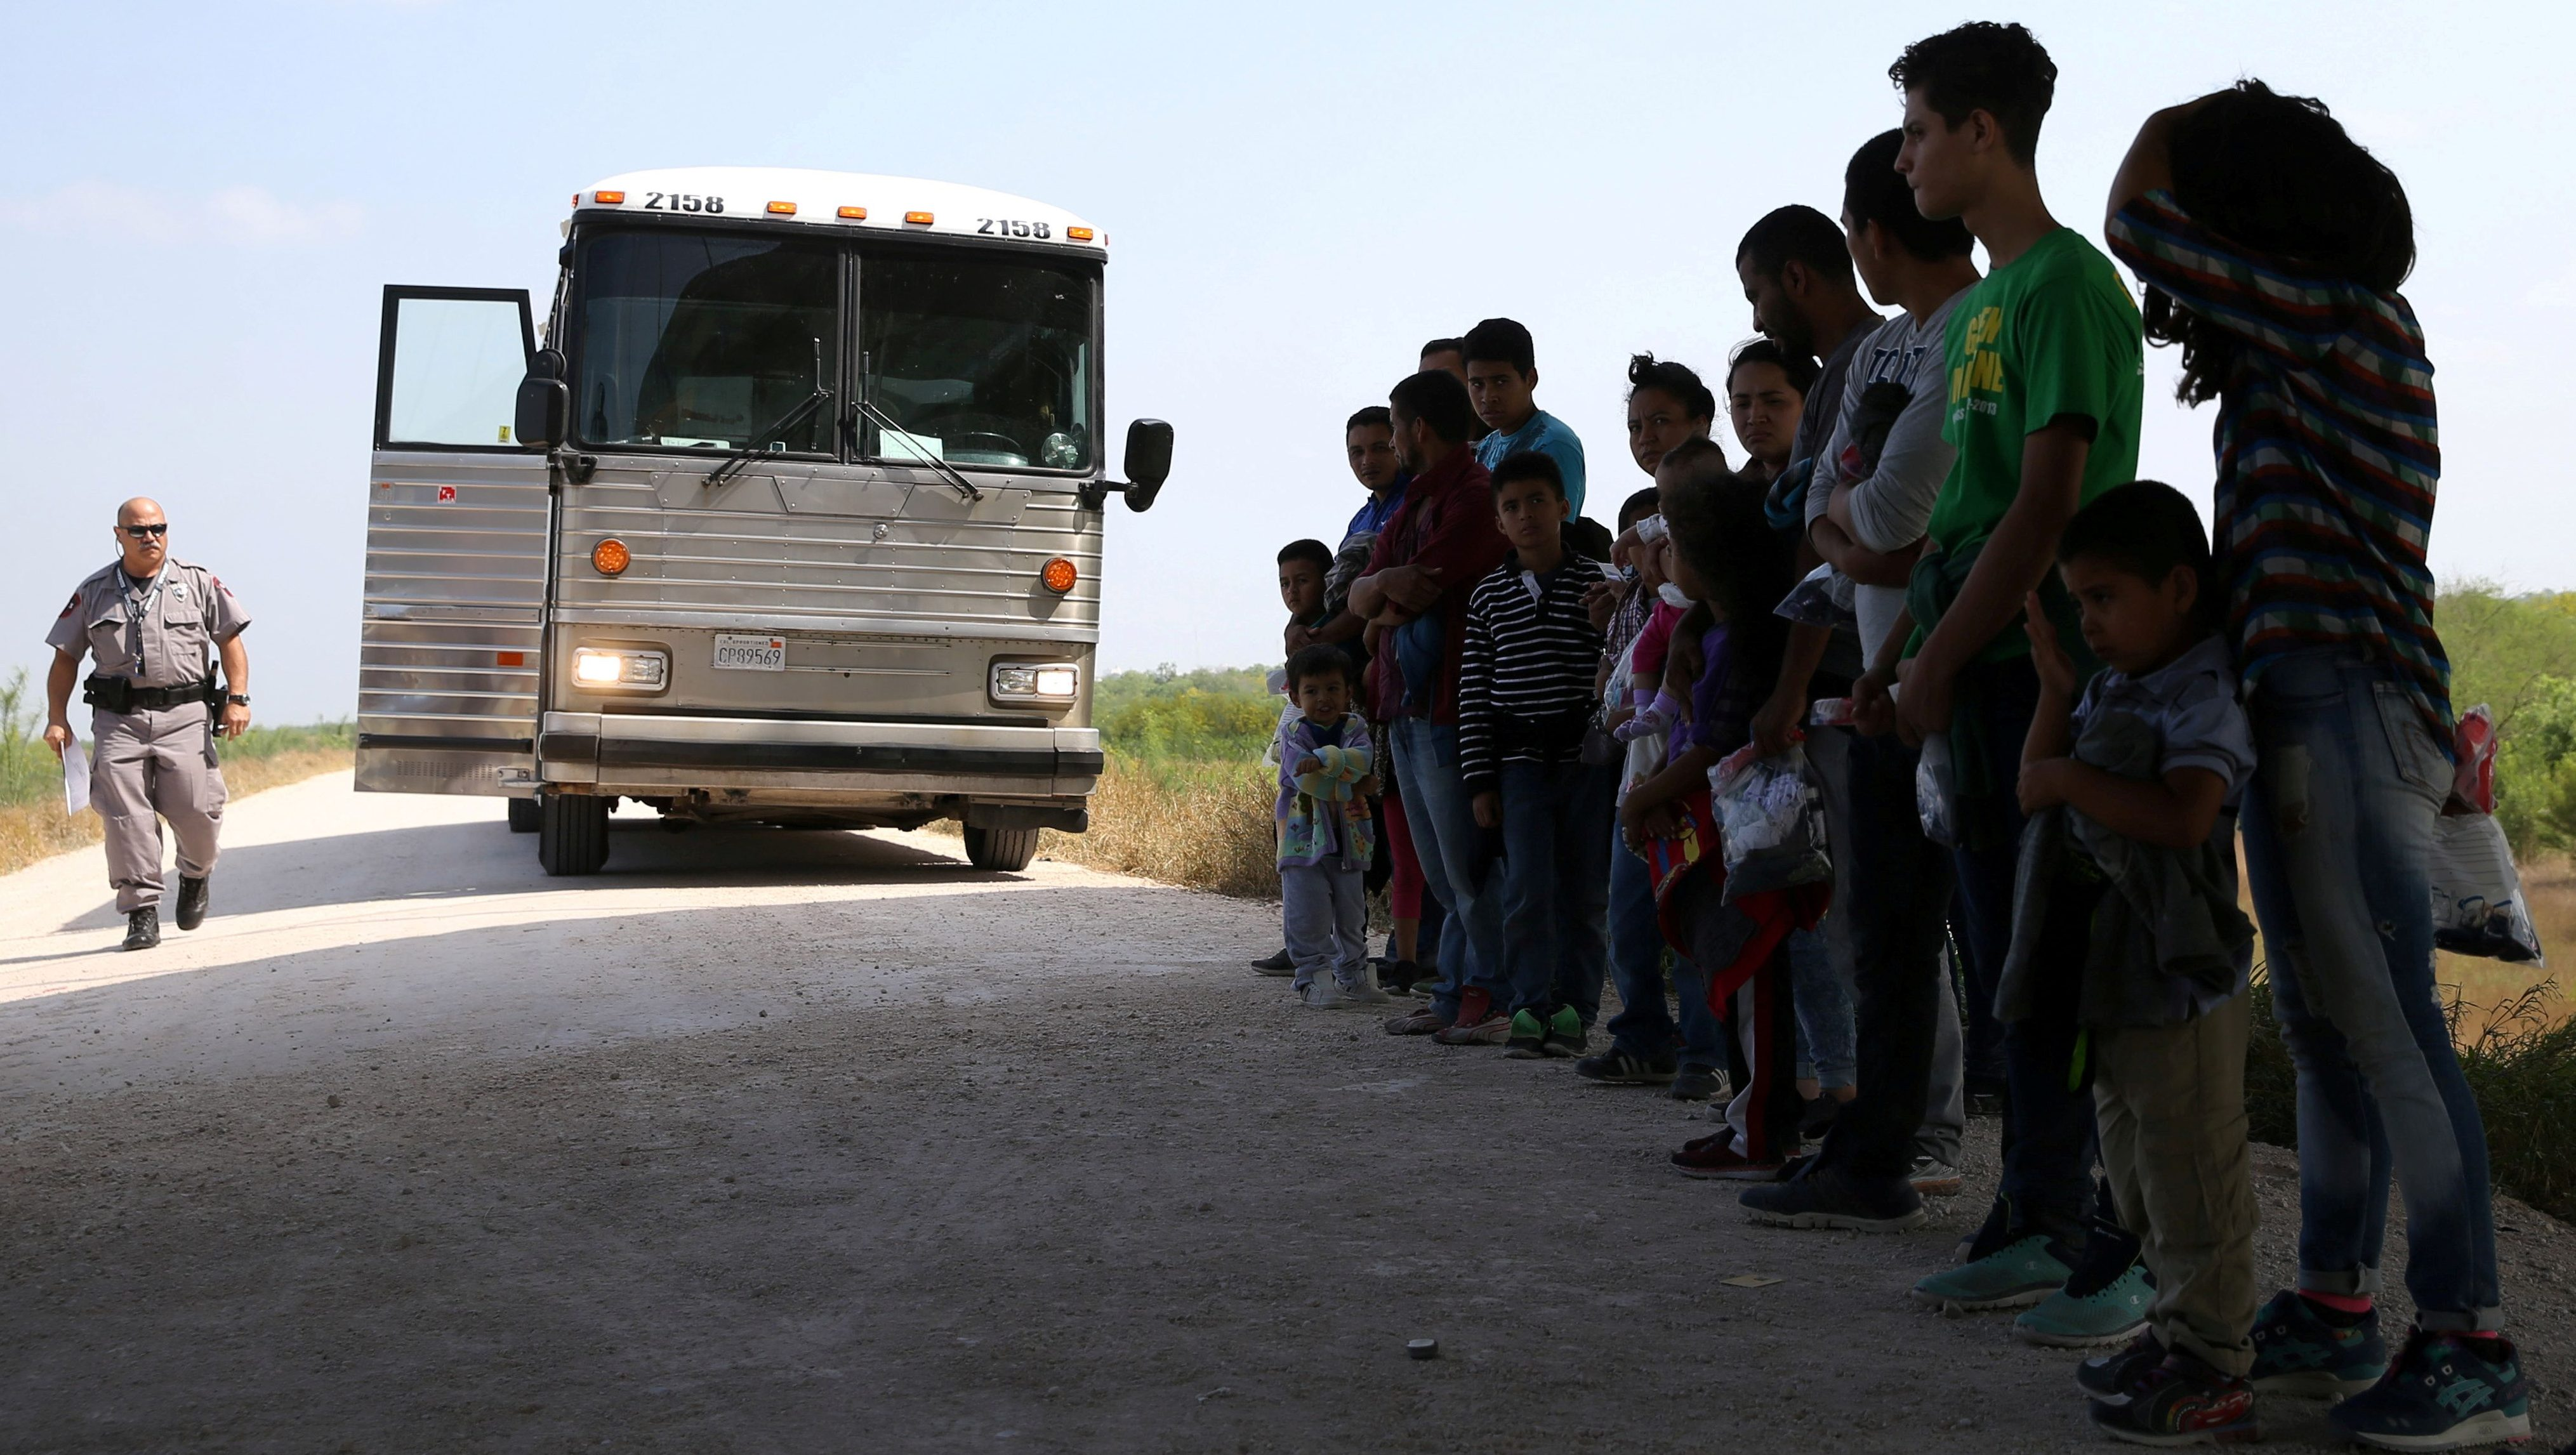 FILE PHOTO: Immigrants who turned themselves in to border patrol agents after illegally crossing the border from Mexico into the U.S. wait to be transported for processing in the Rio Grande Valley sector, near McAllen, Texas, U.S., April 2, 2018. Picture taken April 2, 2018.  REUTERS/Loren Elliott/File Photo - RC195073BC70